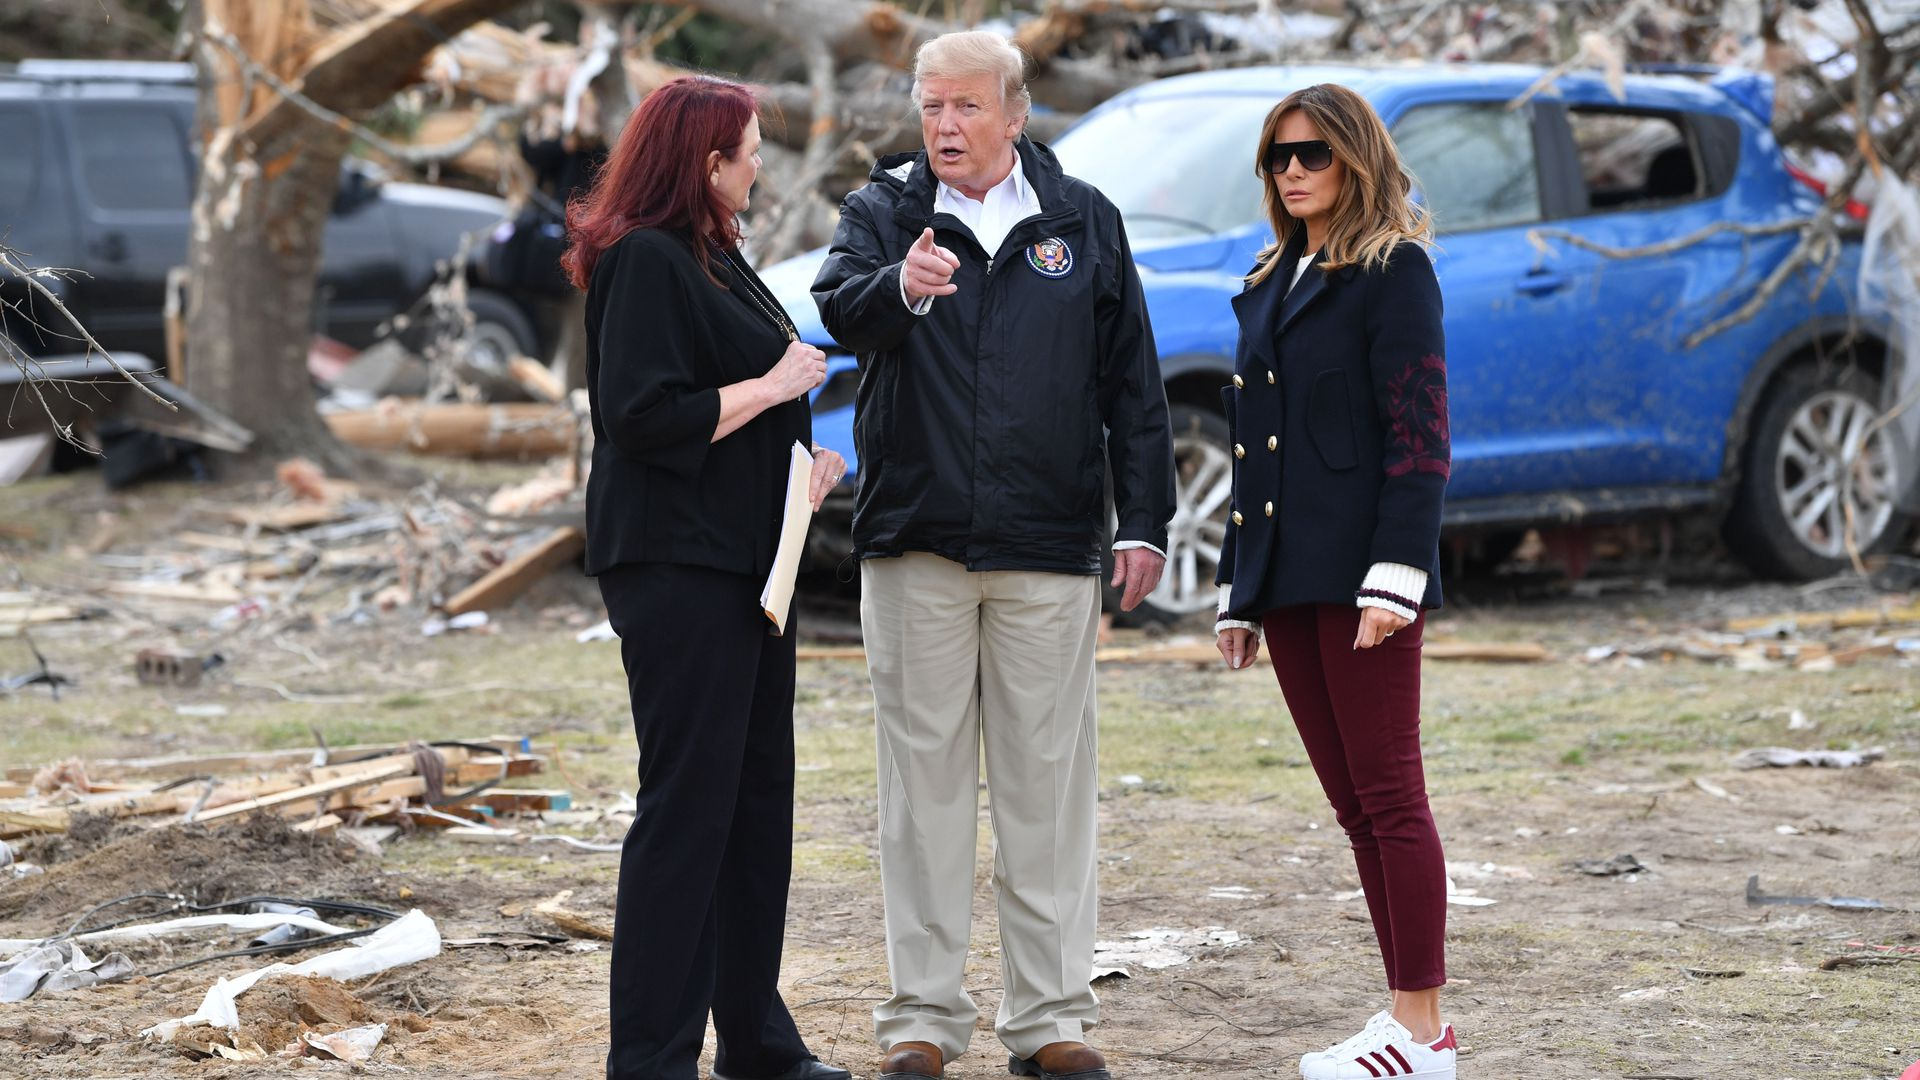 President Trump and wife Melania Trump stand next to a woman in front of rubble from a tornado in Alabama.